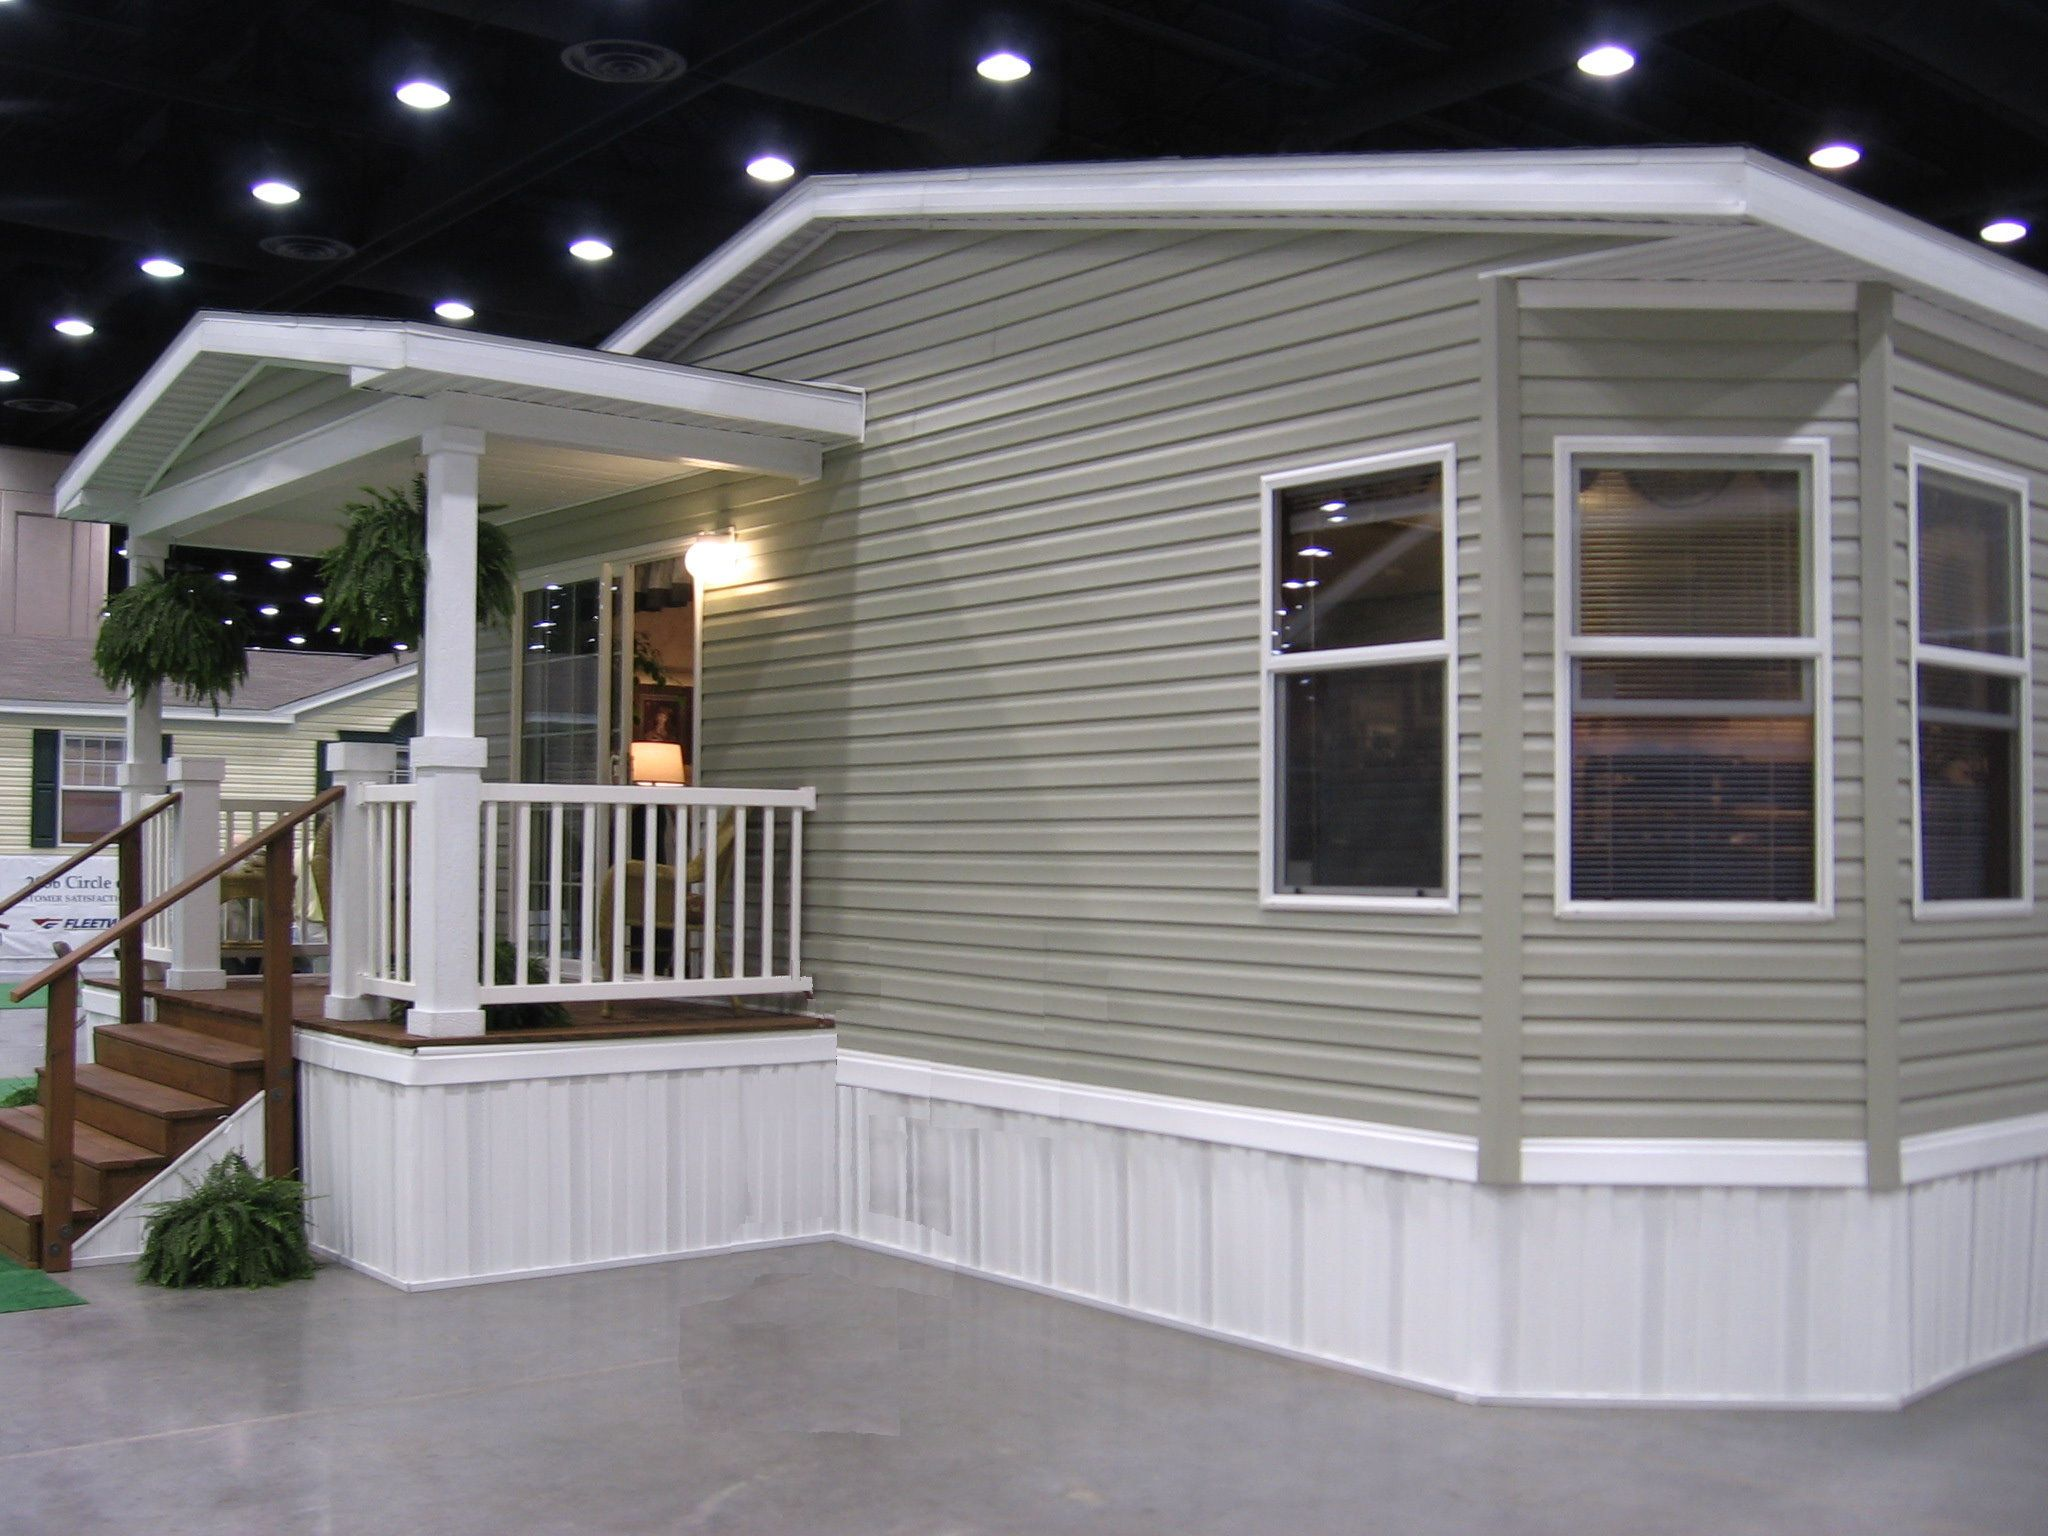 Attirant Mobile Home Deck Ideas | PORCH DESIGNS FOR MOBILE HOMES « Home Plans U0026 Home  Design